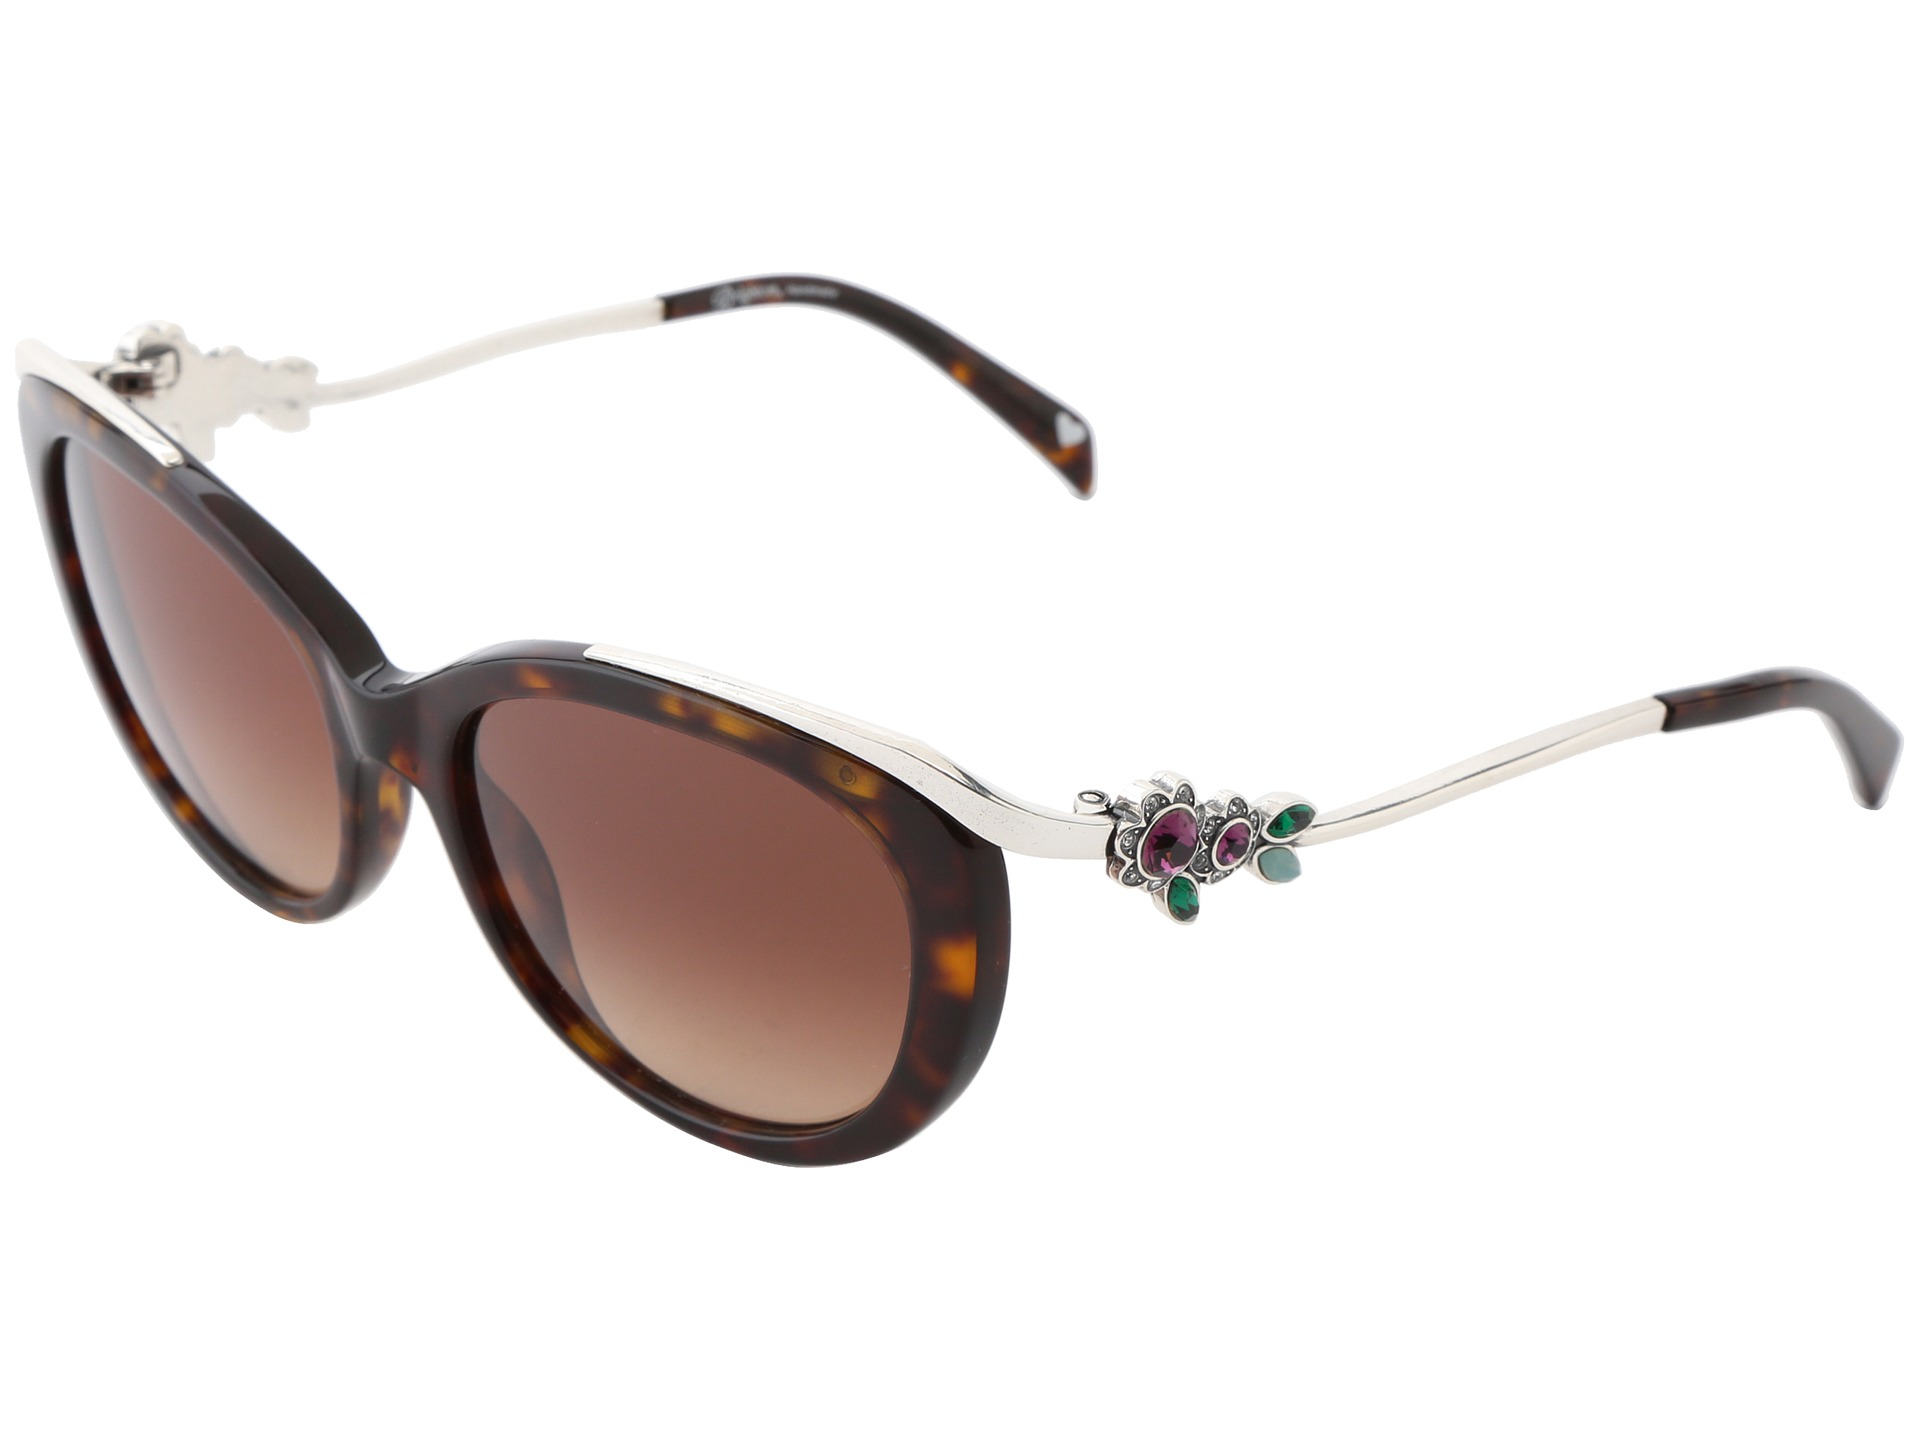 7e7c8554f7f4 Brighton Love In Bloom Sunglasses - www.lesbauxdeprovence.com Free Shipping  BOTH Ways